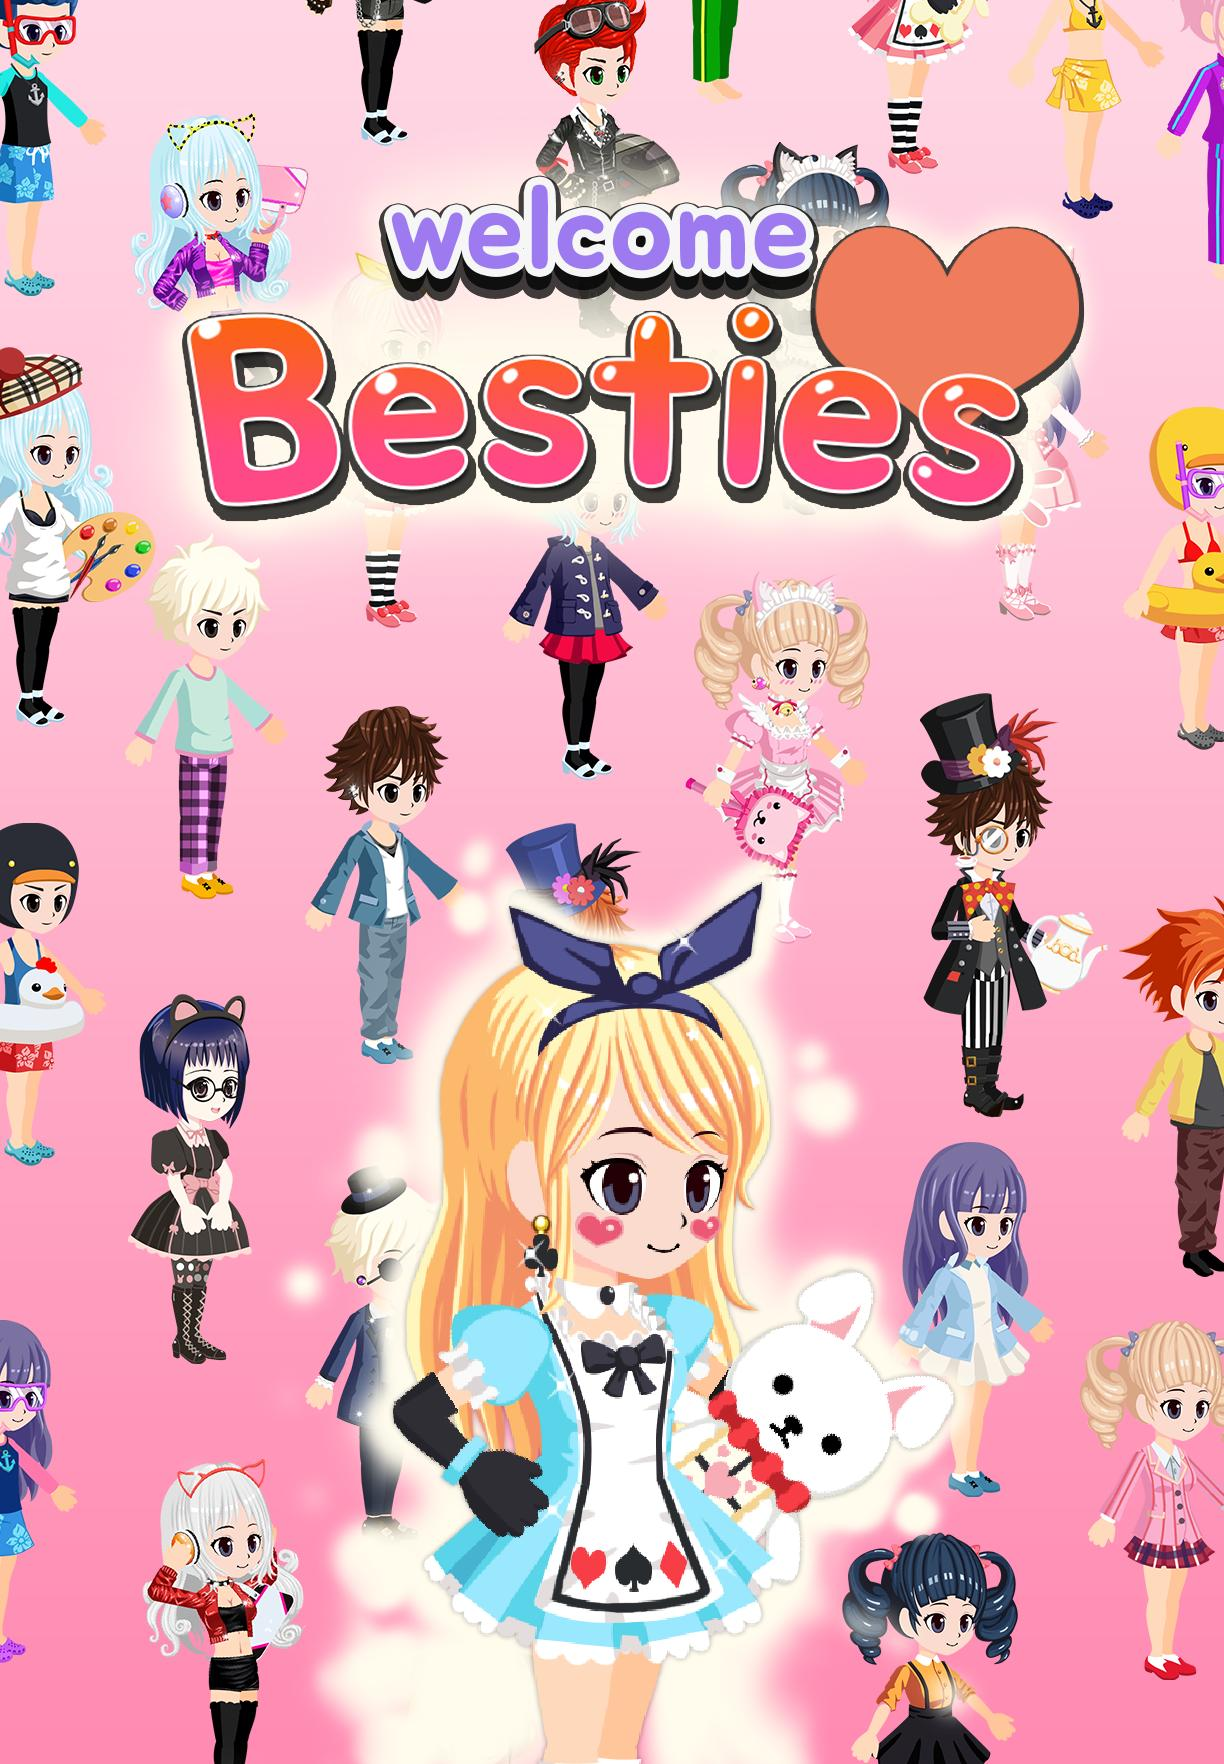 Besties for Android - APK Download